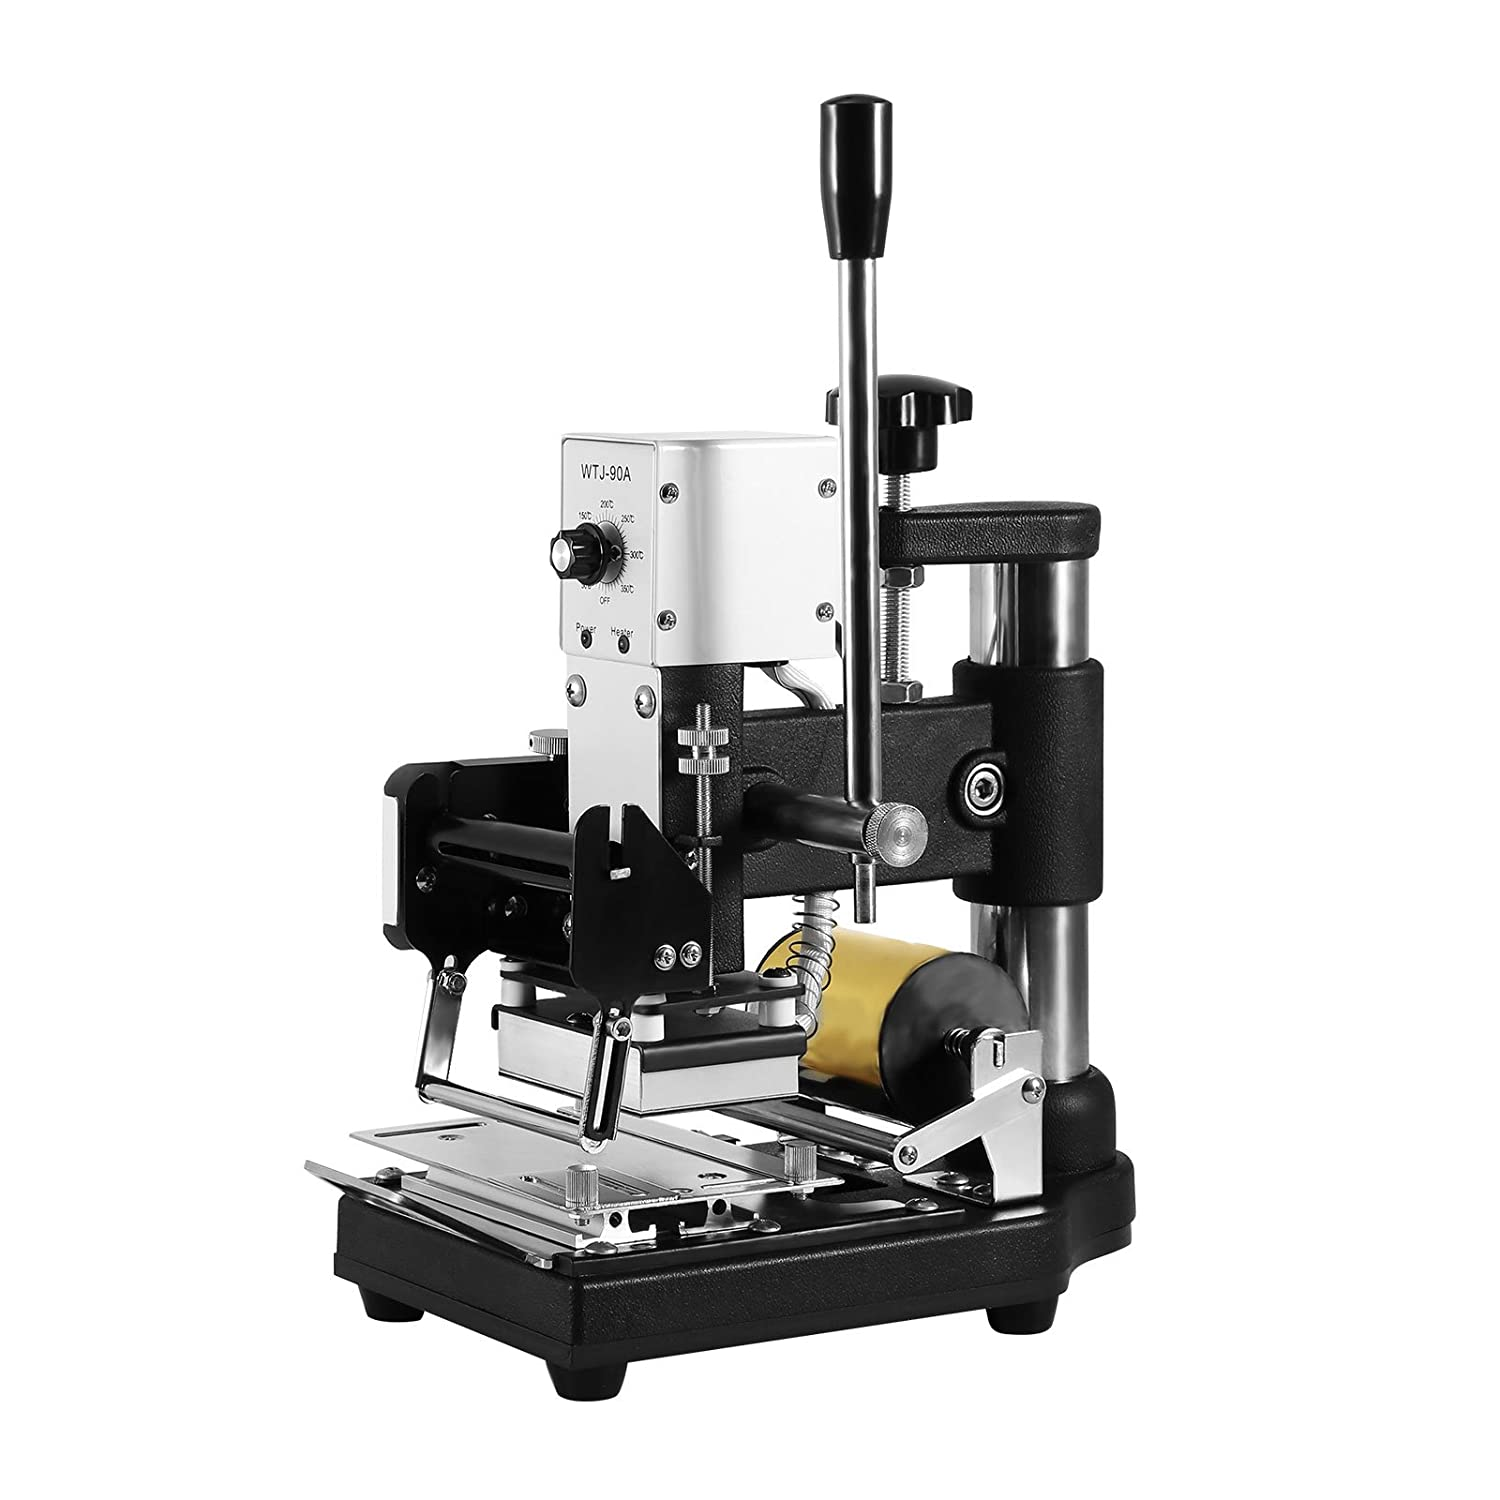 VEVOR Upgraded Hot Foil Stamping Machine 10x13cm Leather Bronzing Pressure Mark Machine 110V with Full Scale on The Base Plate for PVC Leather PU Paper Logo Embossing